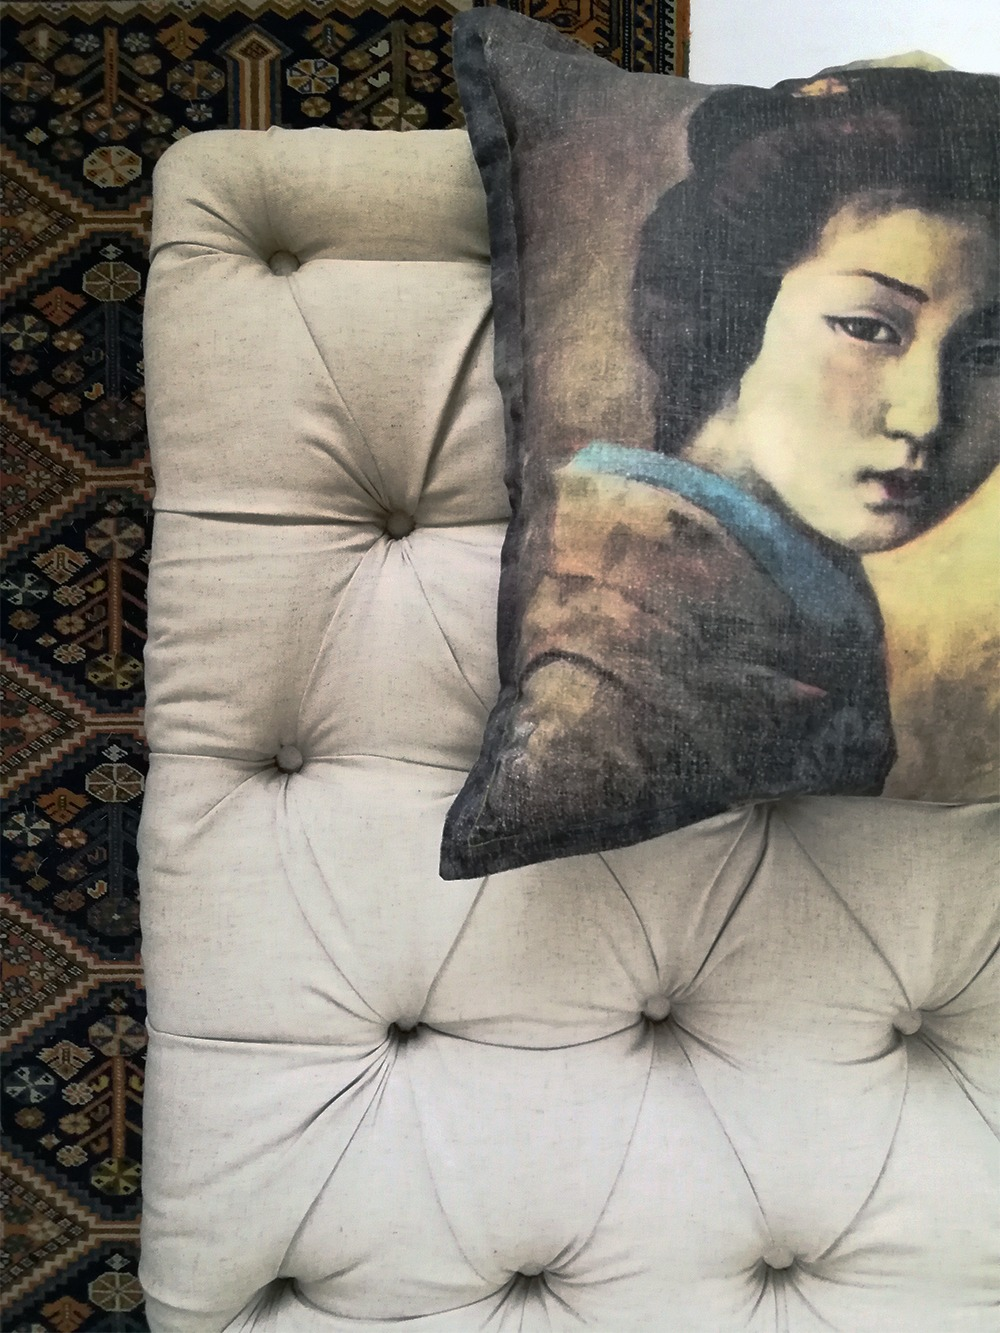 ottoman and Chinese lady cushion